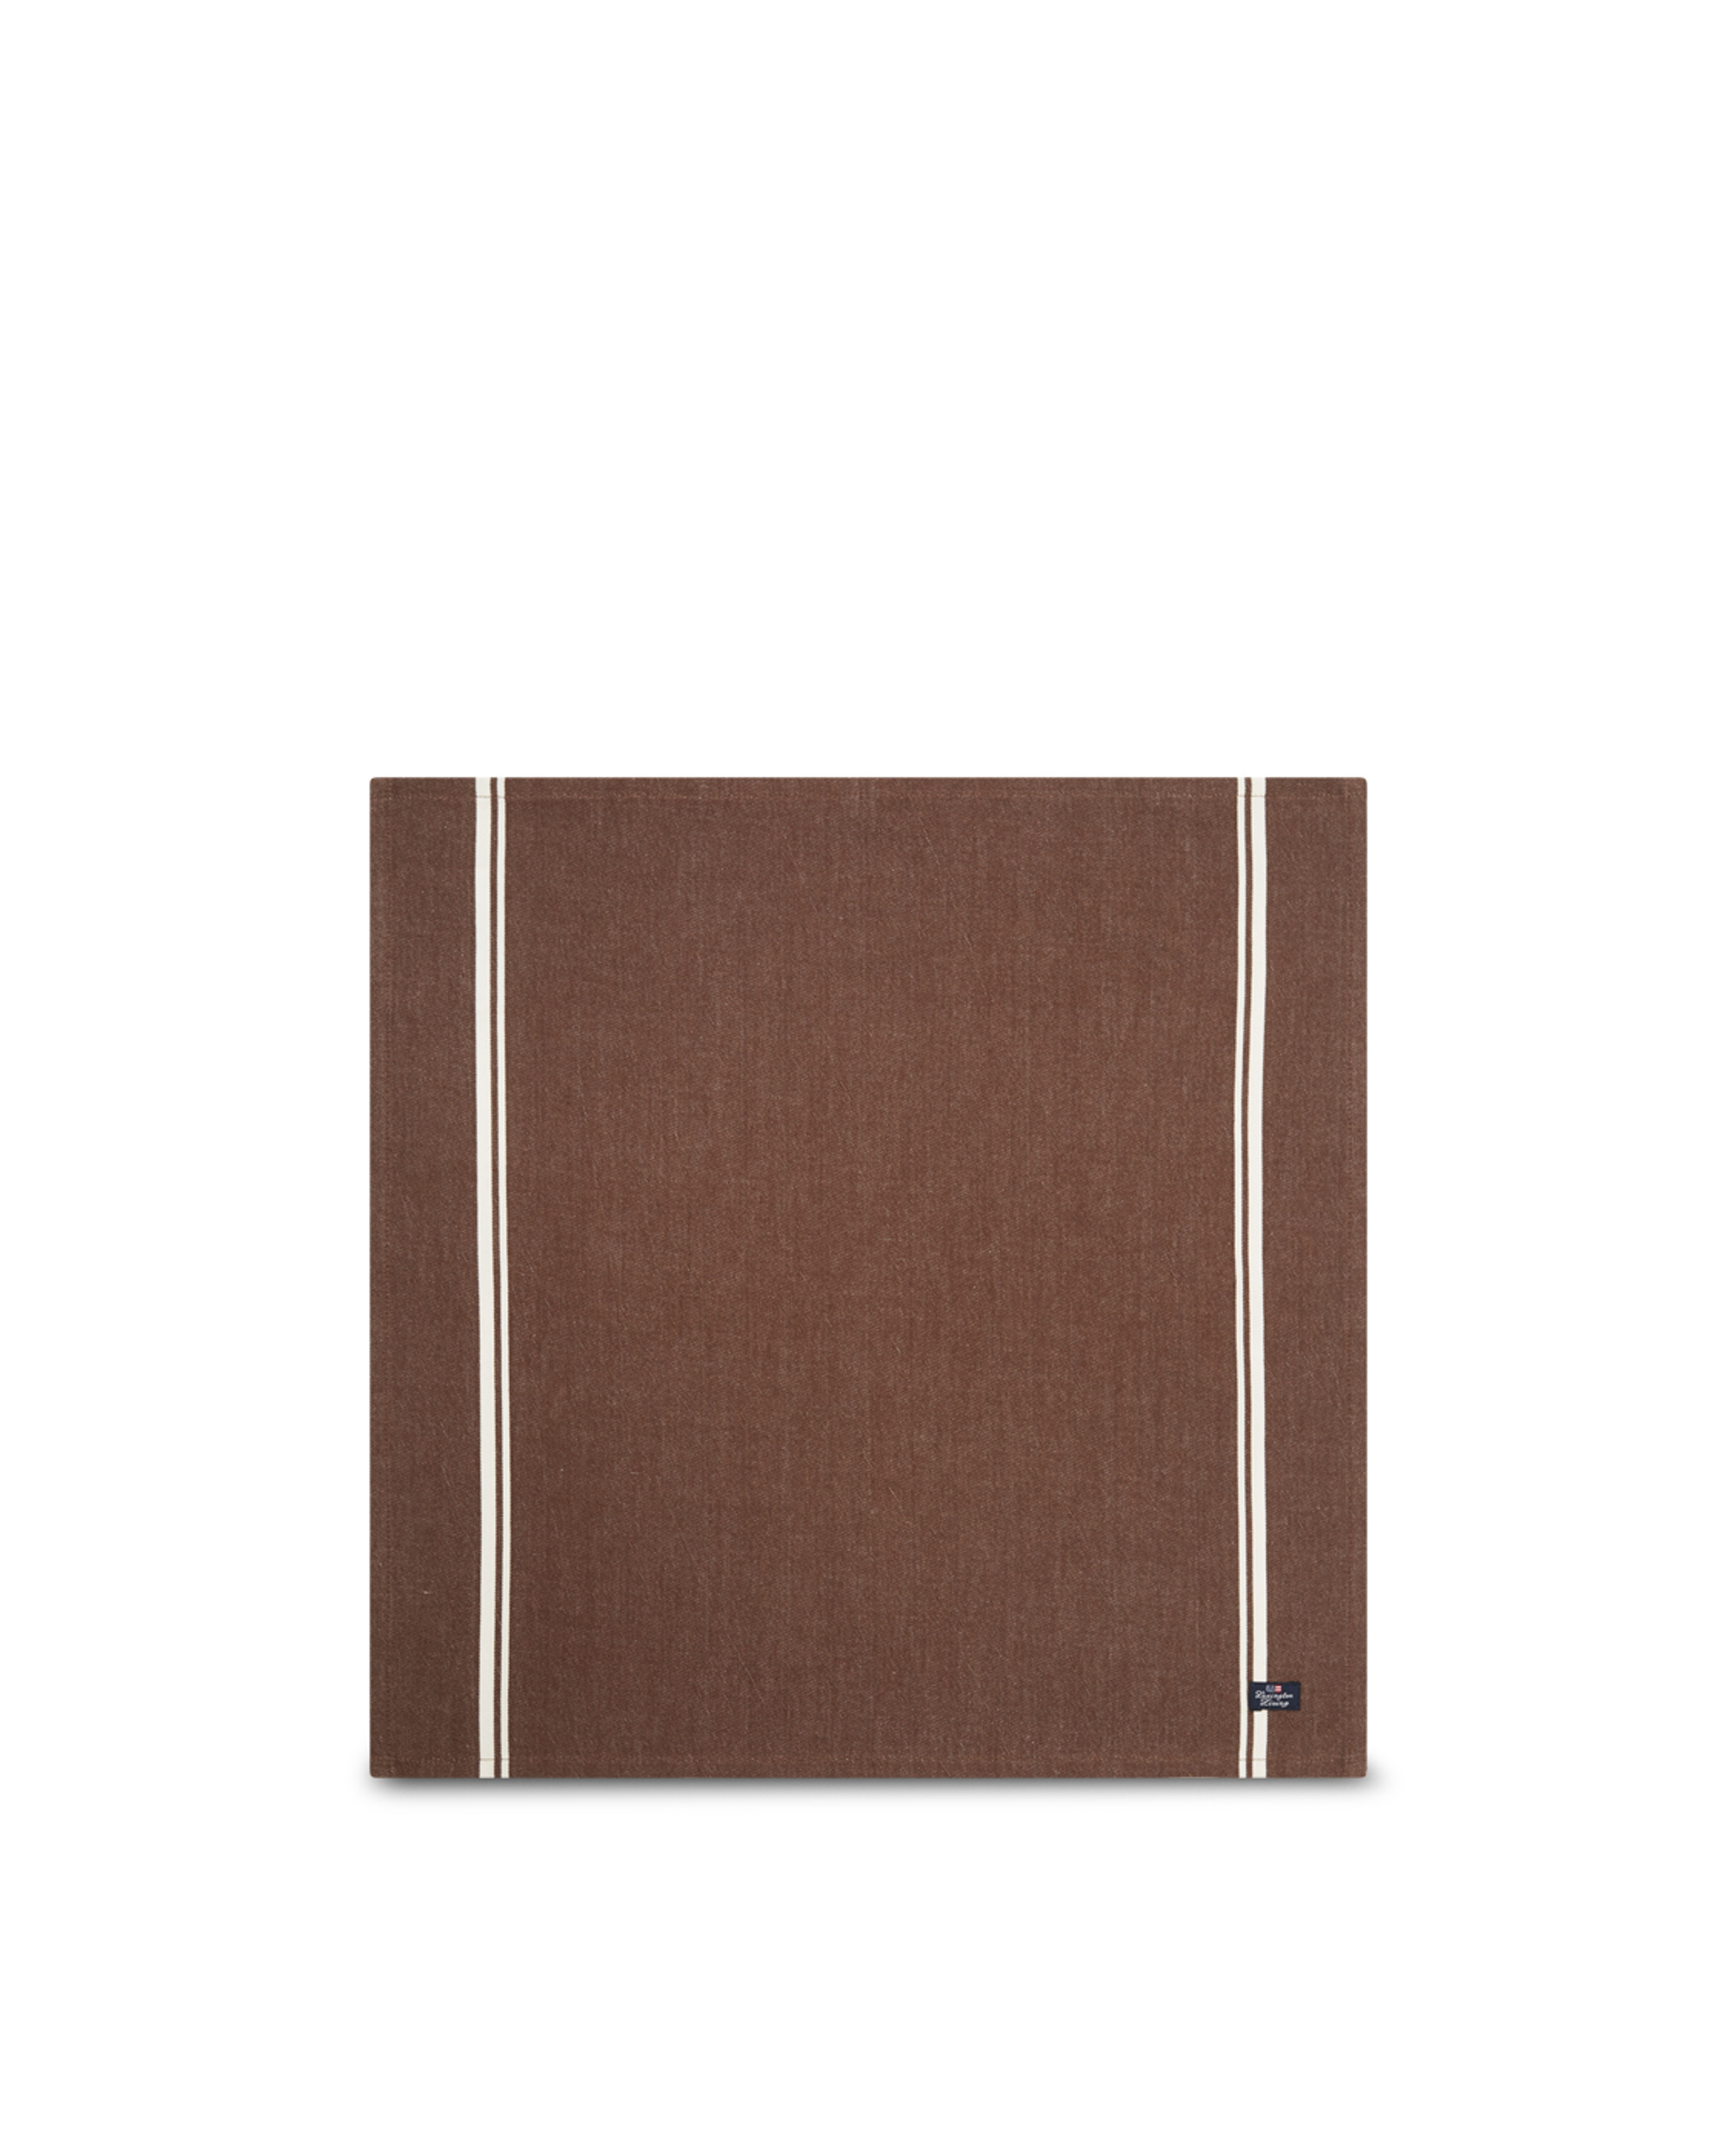 Cotton Twill Napkin With Stripes, Brown/White